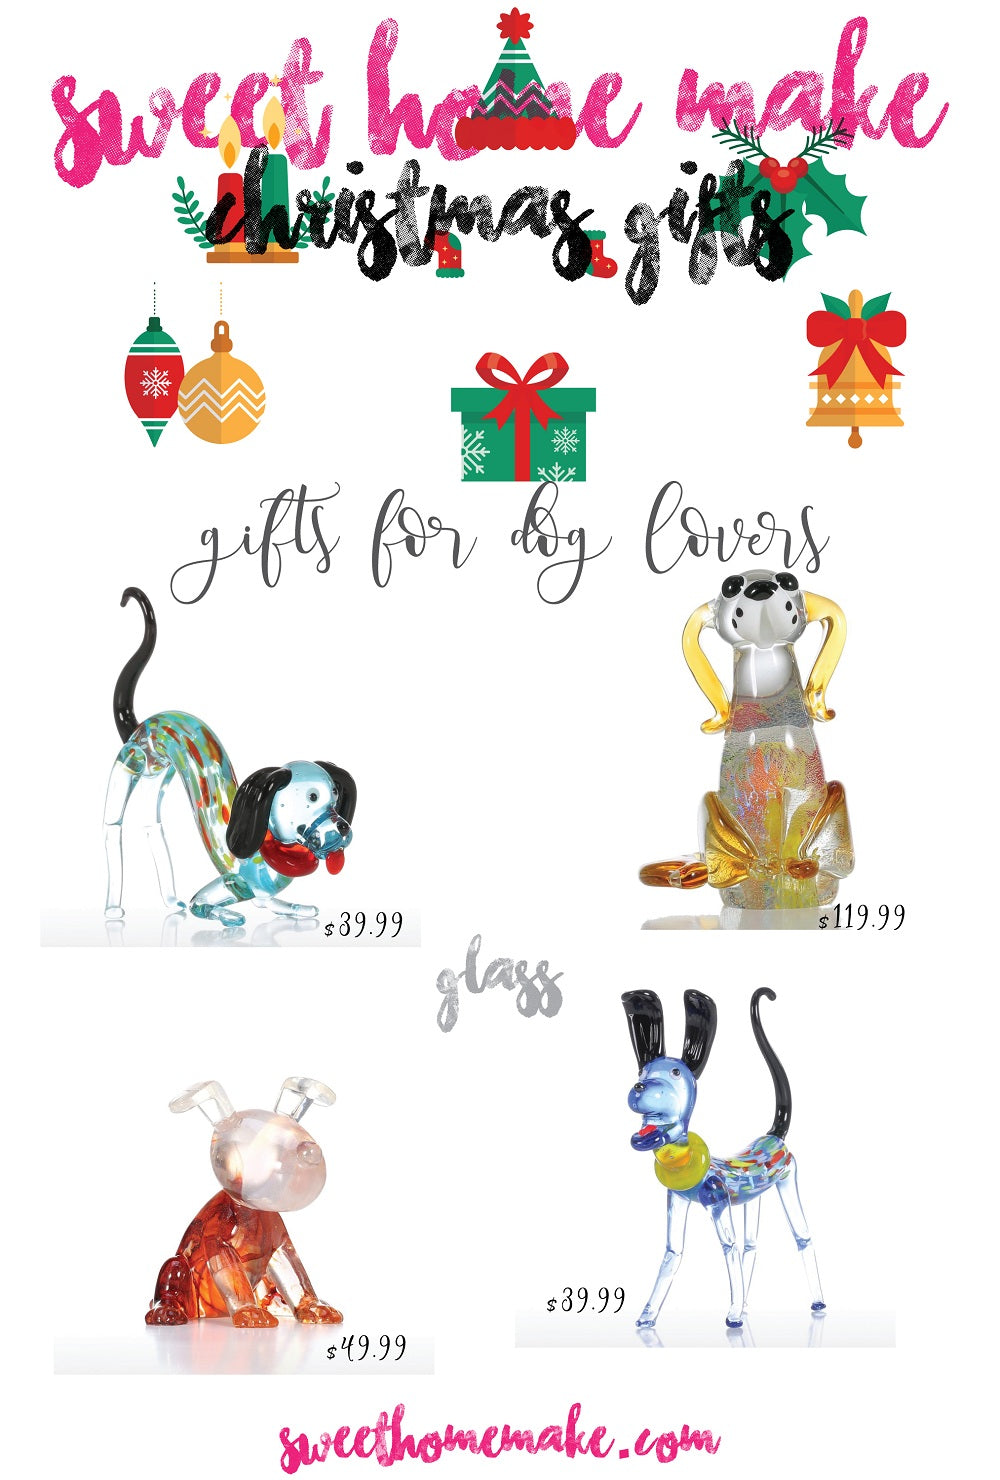 Gifts for Dog Lovers and Dog Gifts with Christmas Gifts